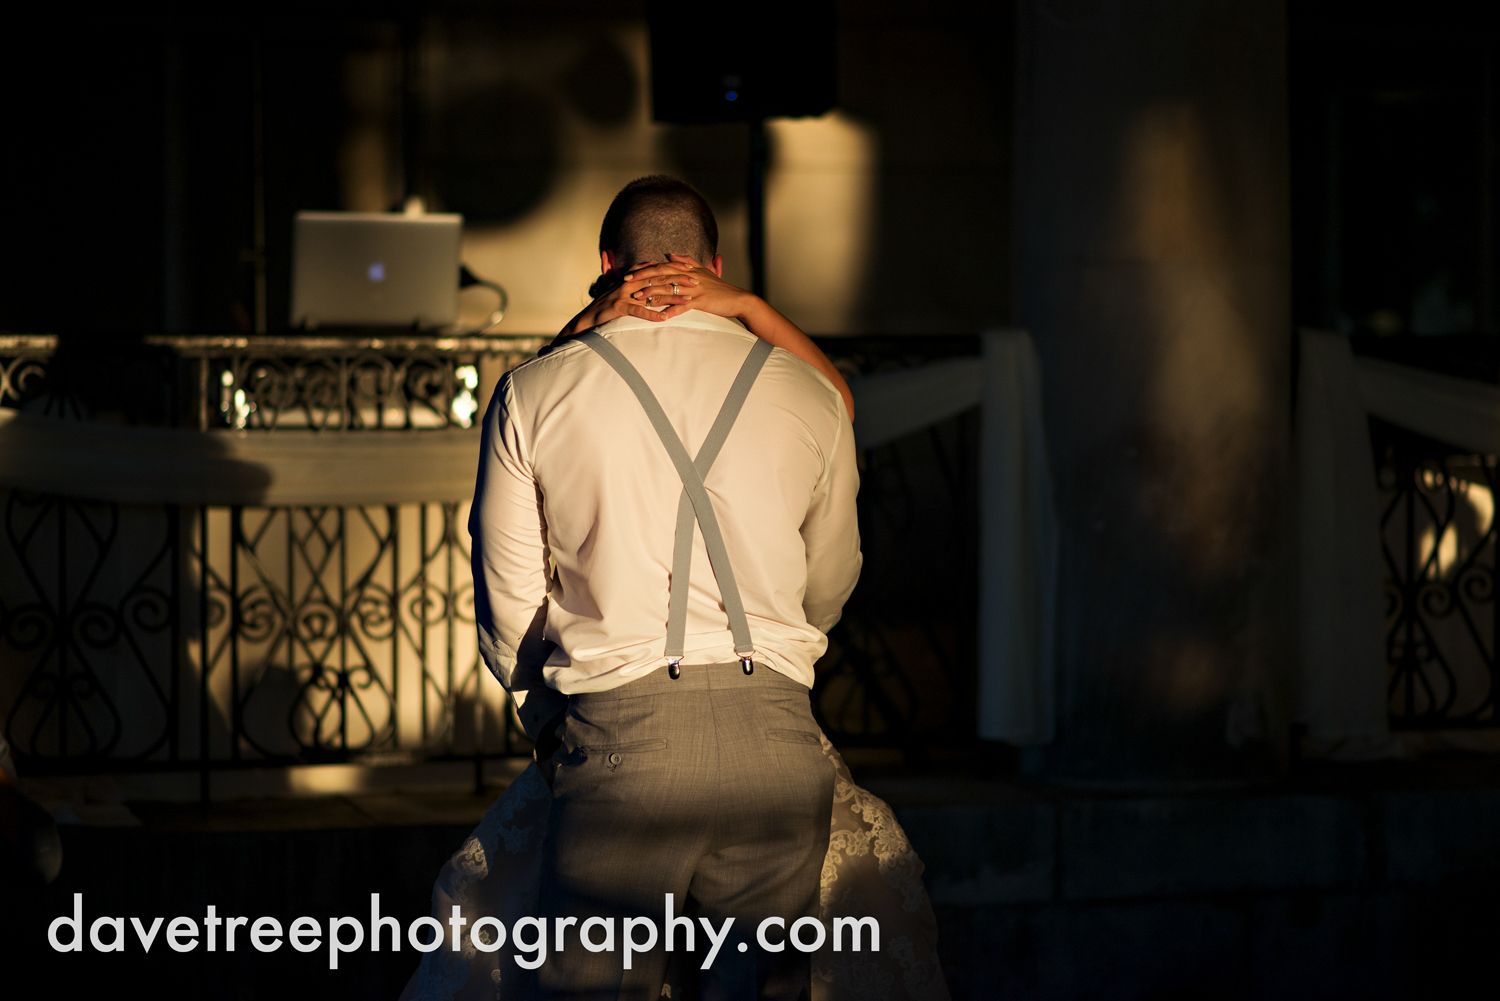 veranda_wedding_photographer_st_joseph_wedding_119.jpg